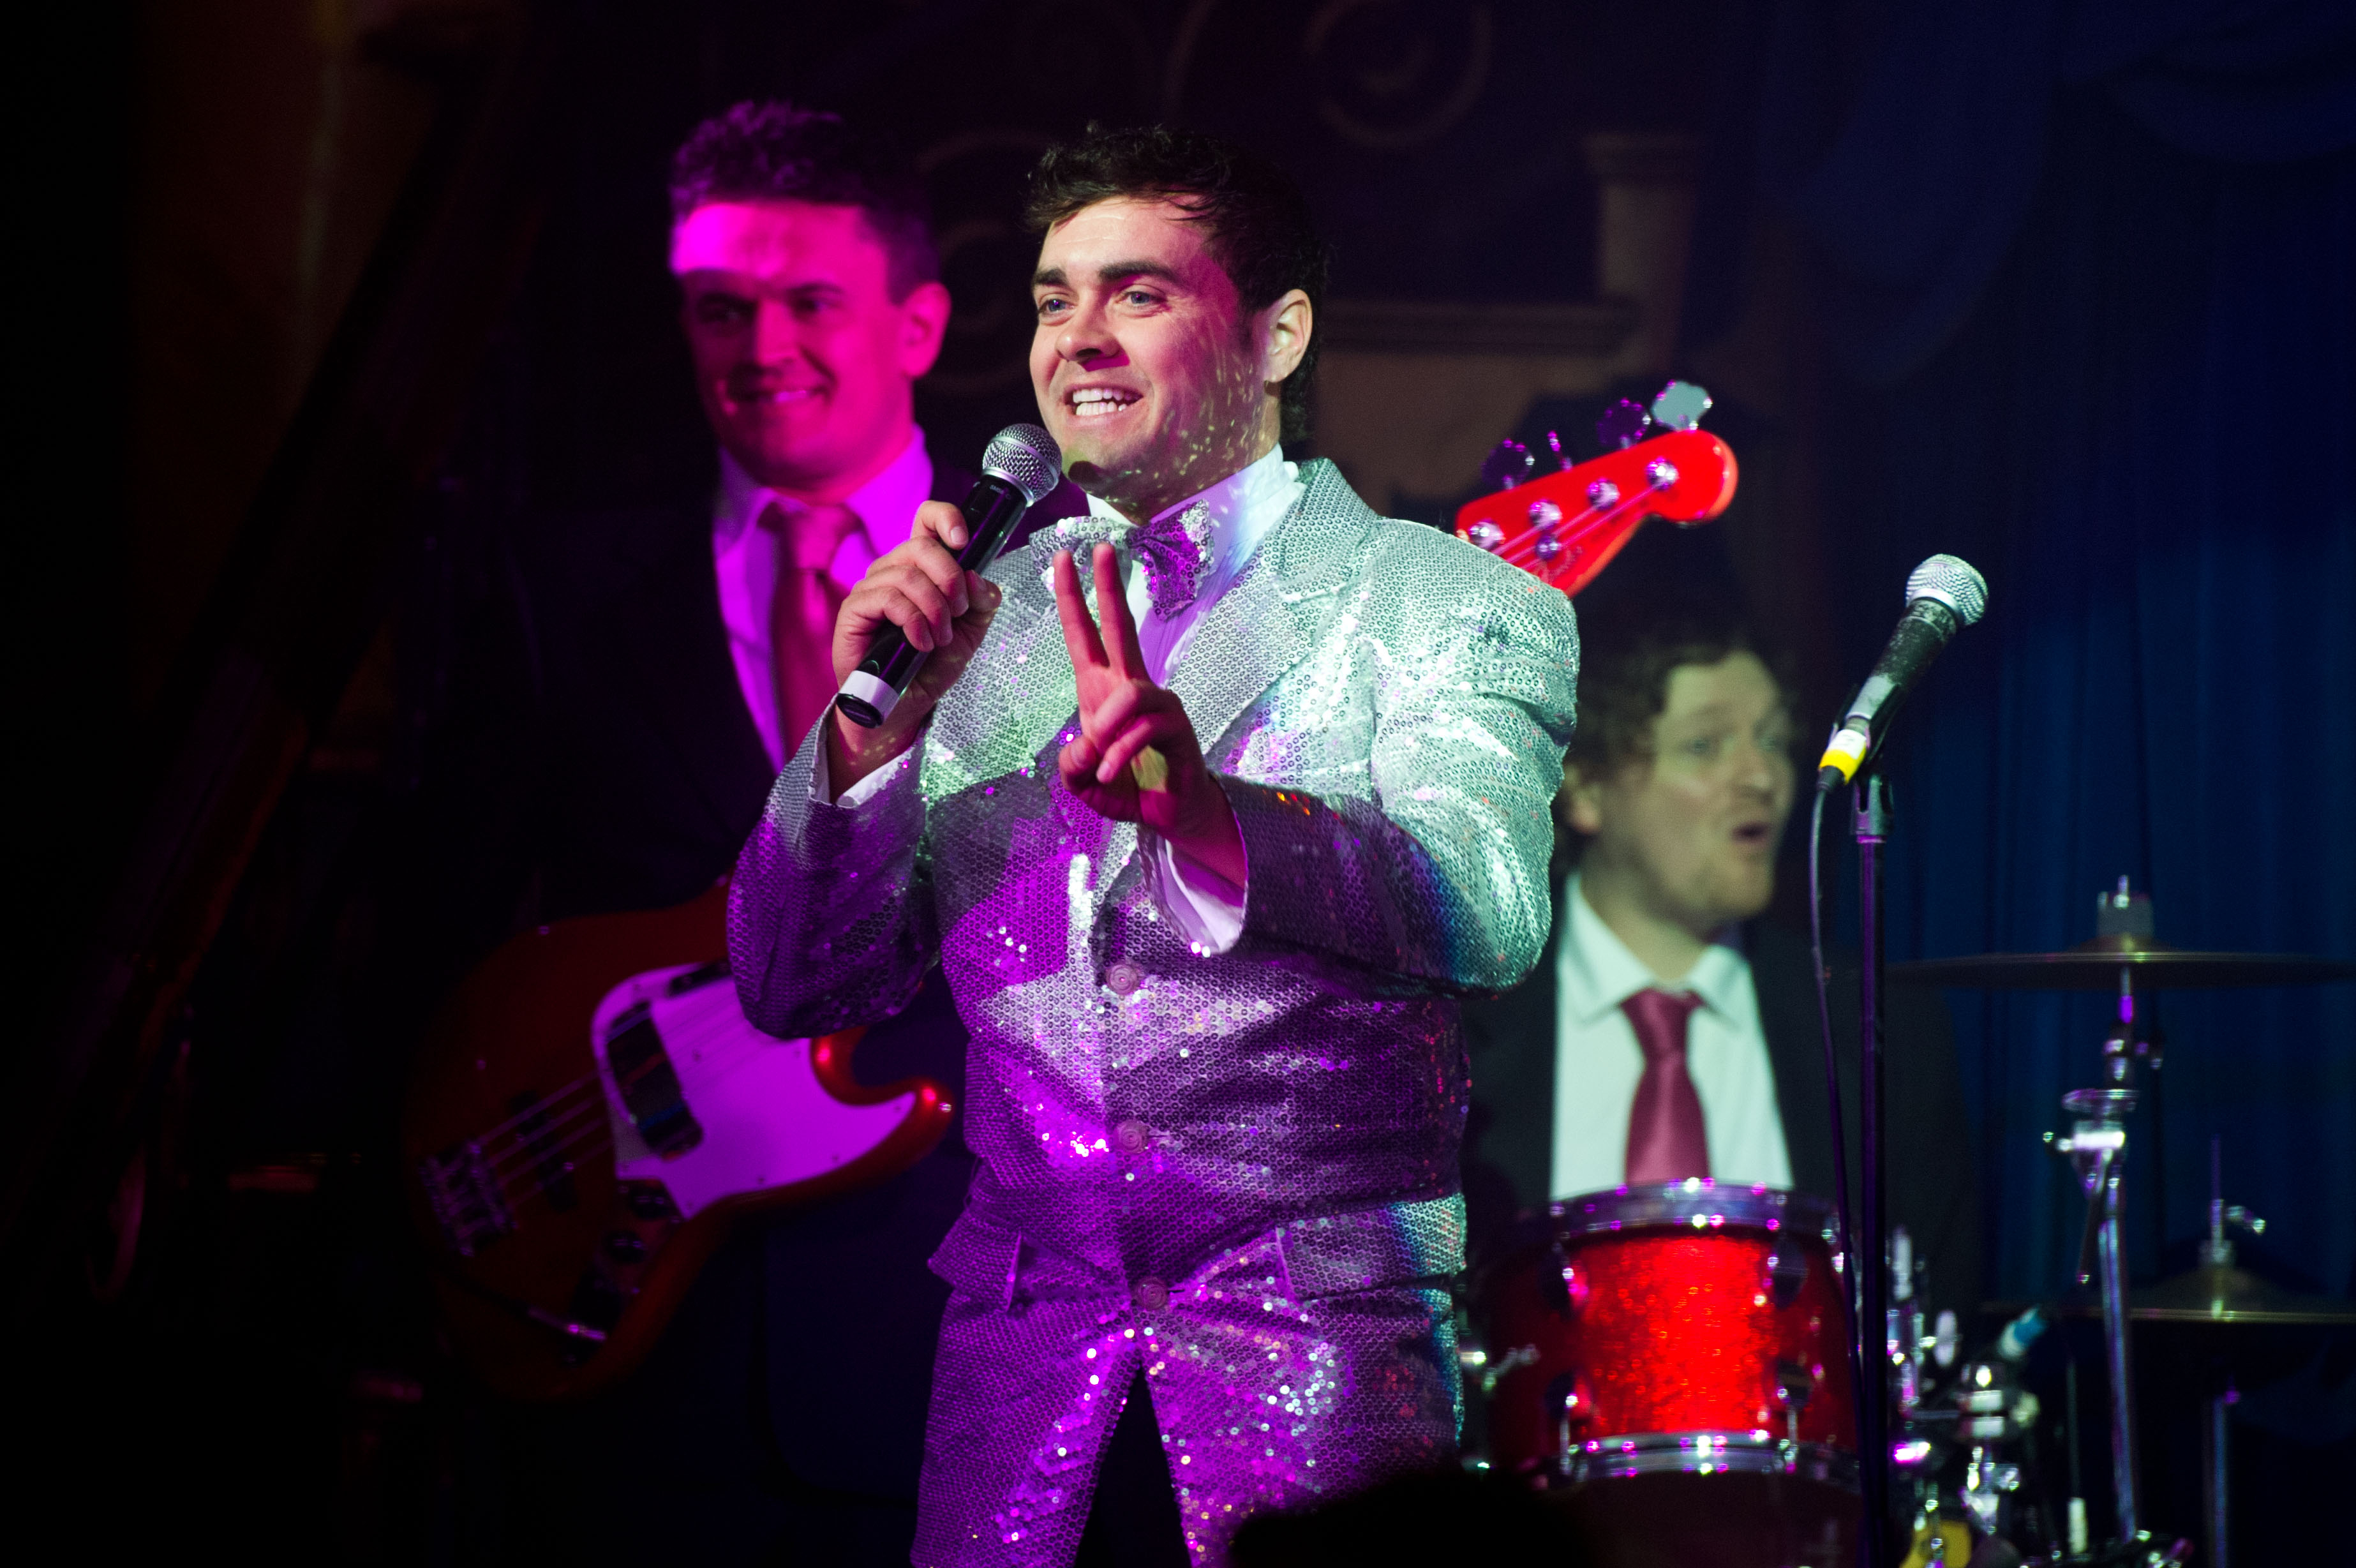 A smiling host in a sparkly silver jacket talks into a microphone with a guitarist and drummer behind him.